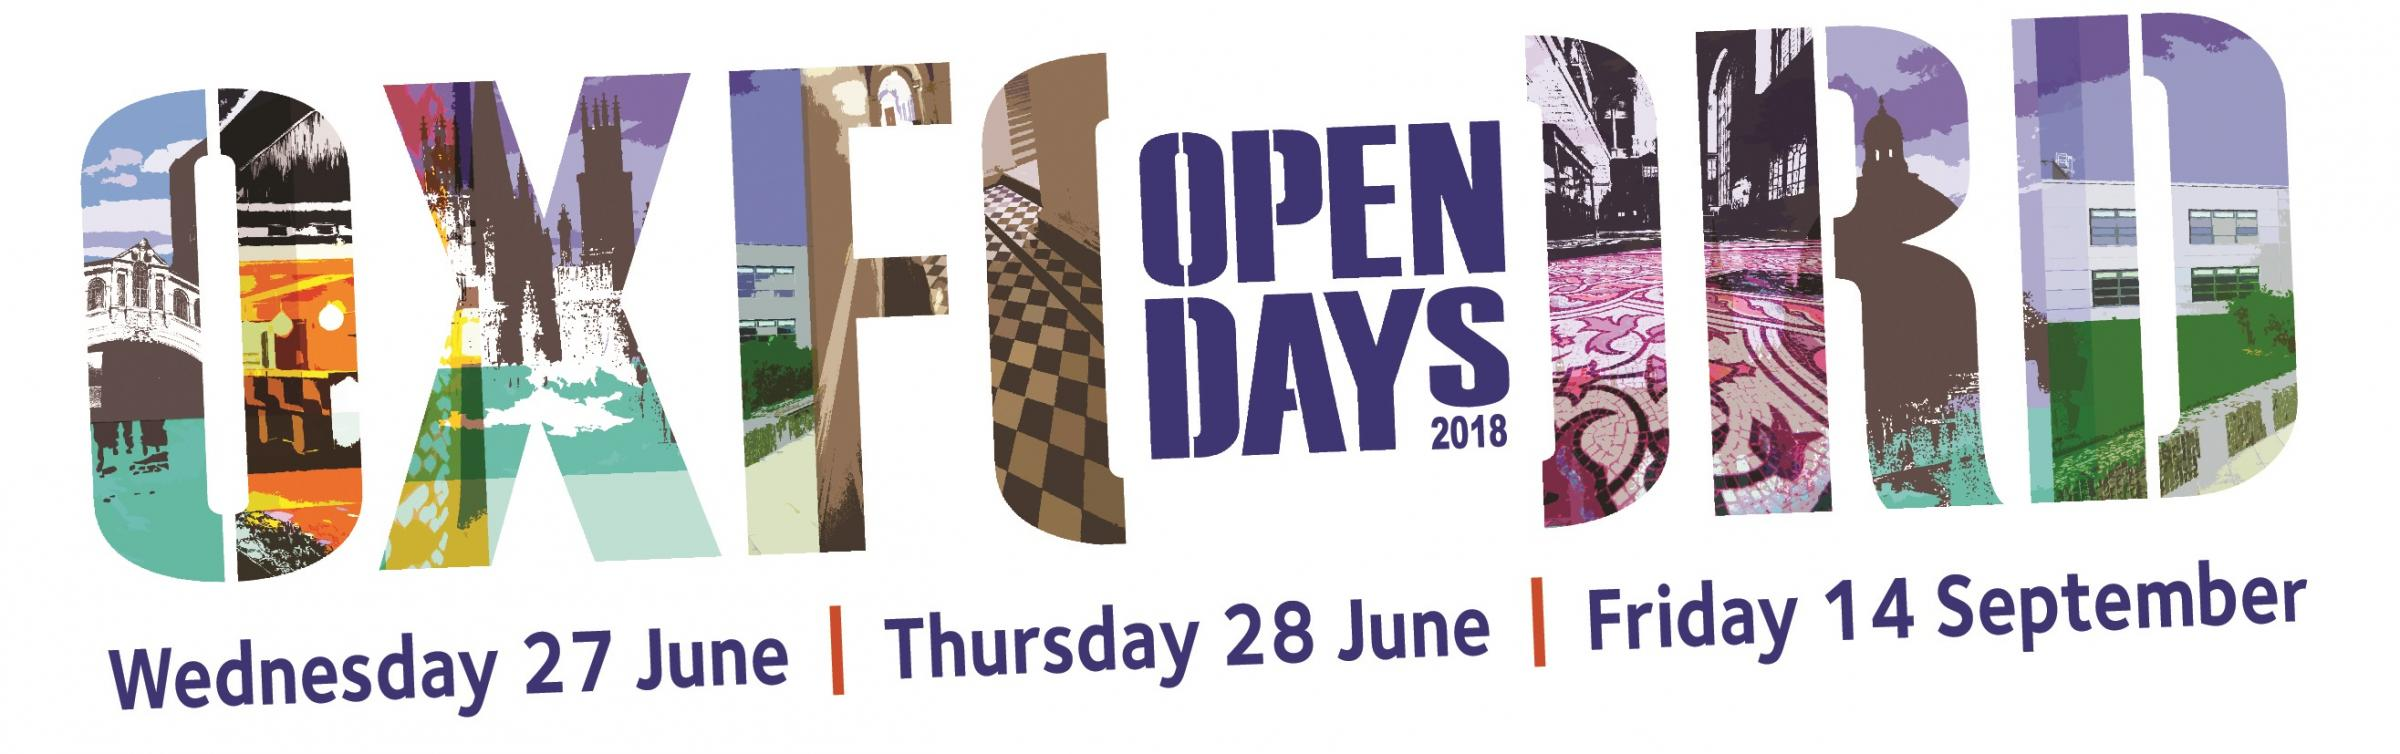 University of Oxford Open Days